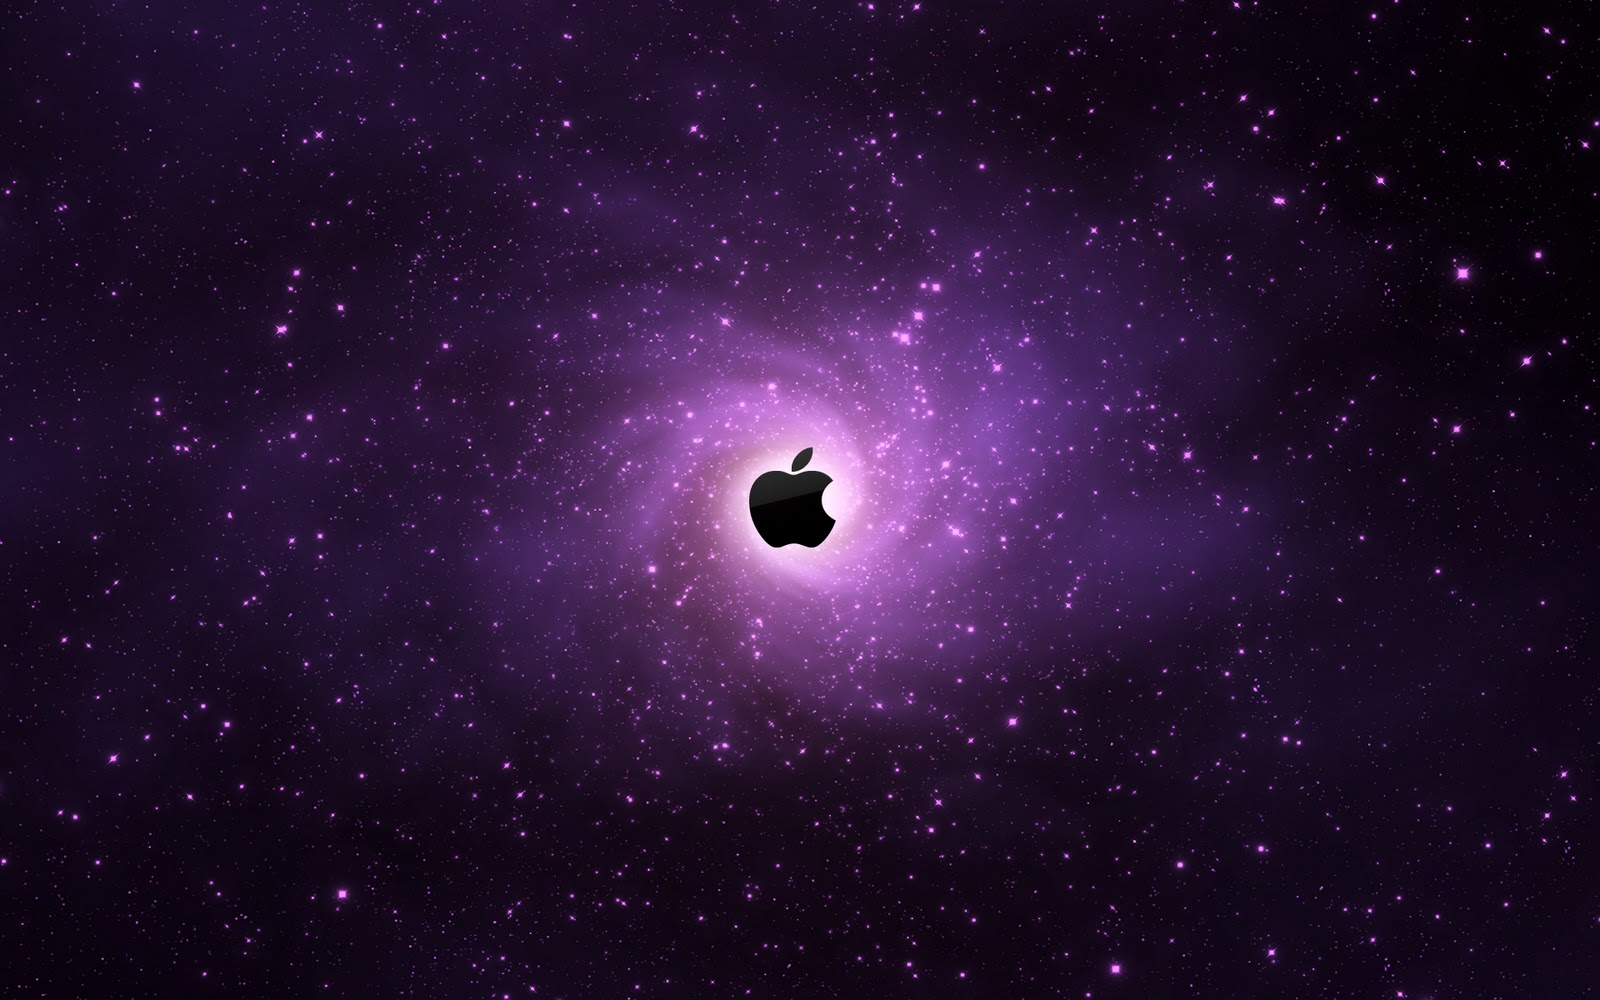 Apple Logo New Collections Wallpaper   Latest Best Wallpapers 2011   indexwallpapers